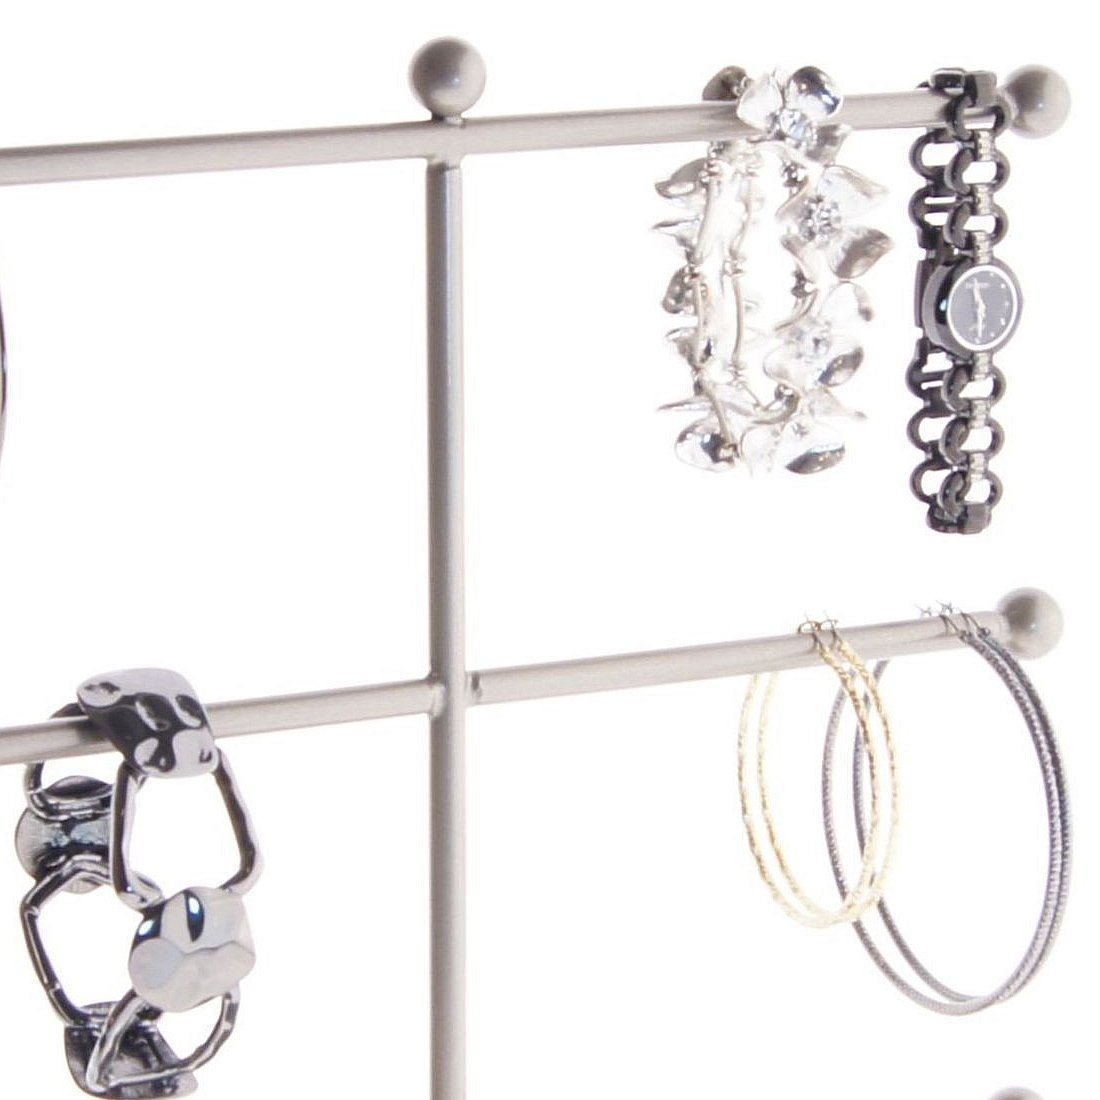 Amazoncom Bracelet Holder Display Stand 3 Tier T Bar Jewelry